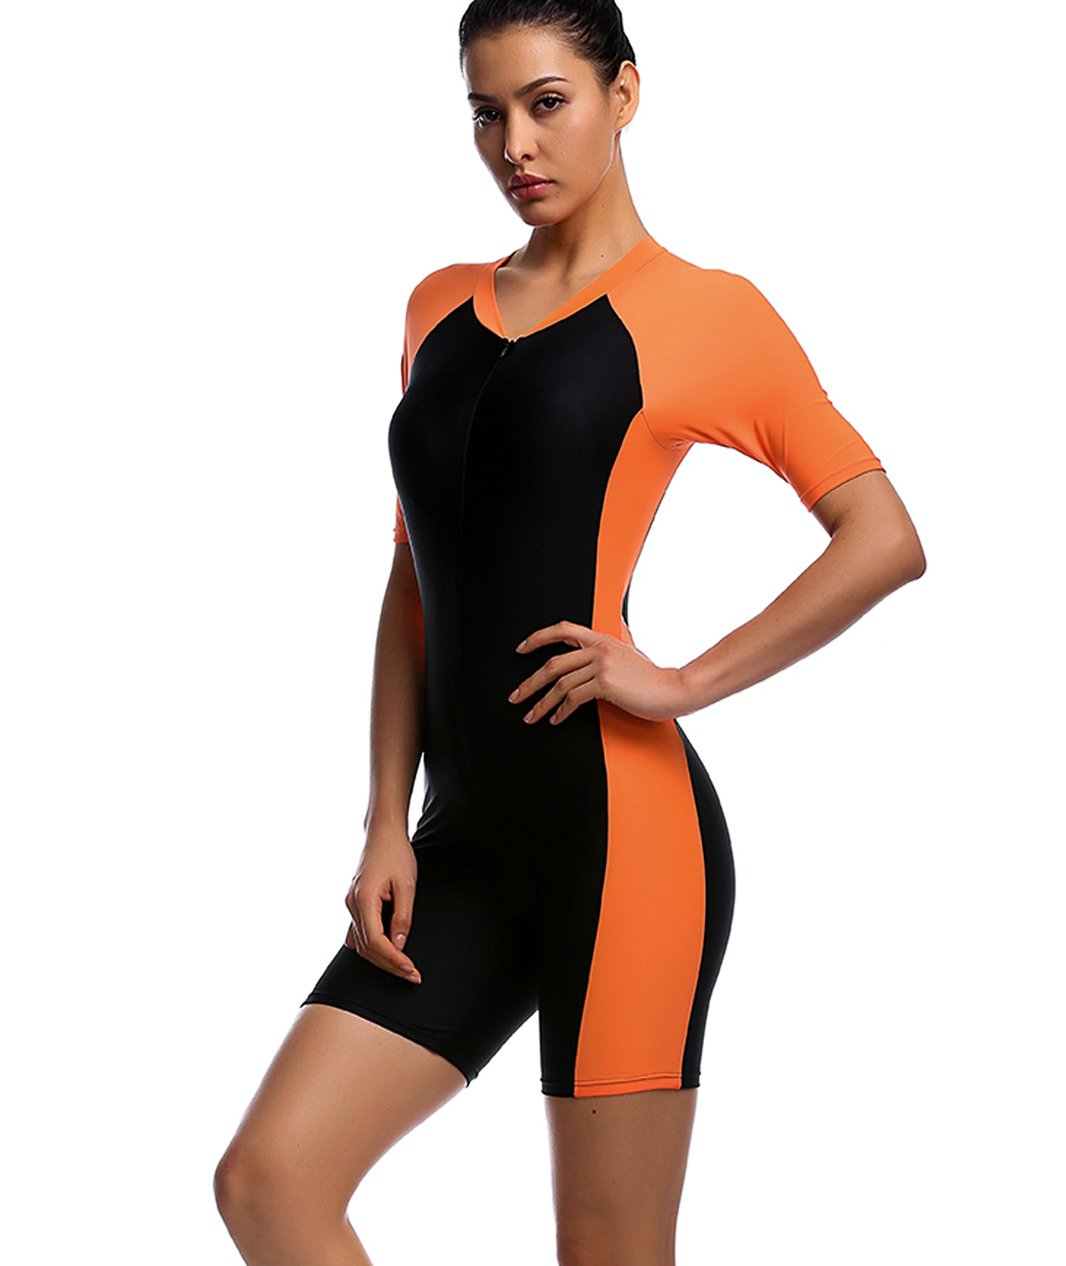 f3fe3db695a Galleon - One Piece Swimsuit For Woman Belloo Orange Short-sleeve Surfing  Suit Sun Protection, Orange, 2X-Large